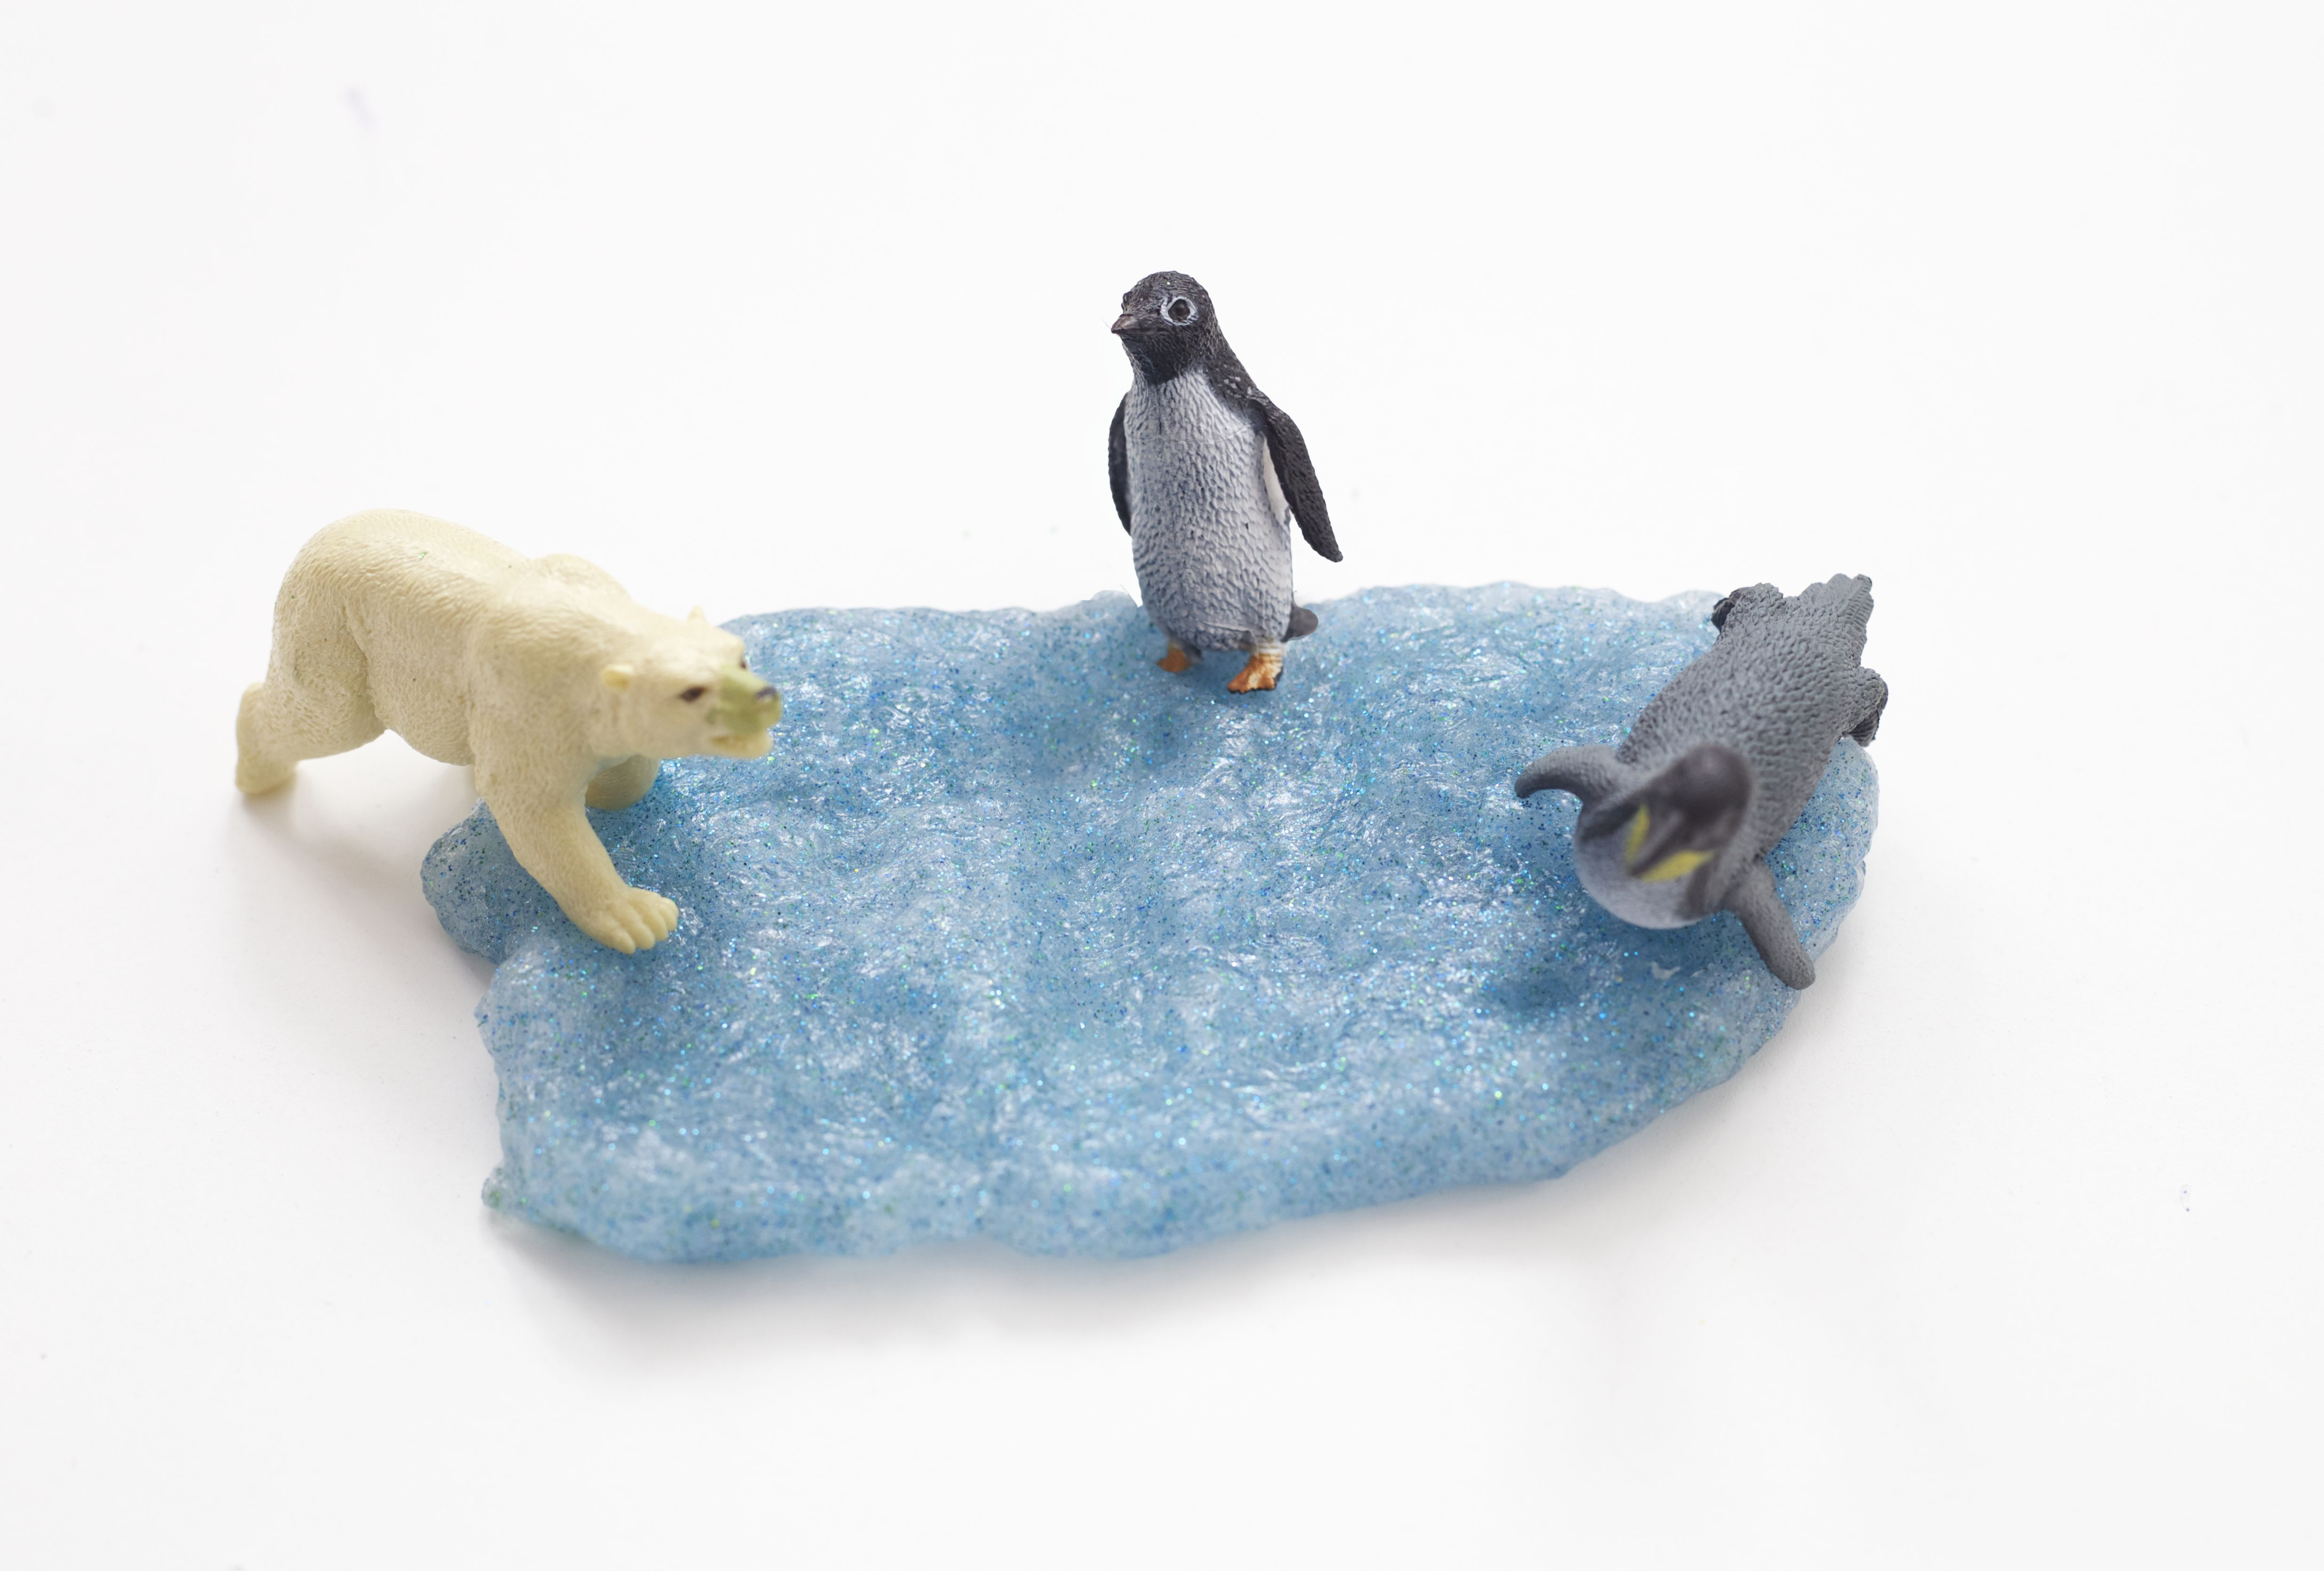 Light blue slime with plastic animals